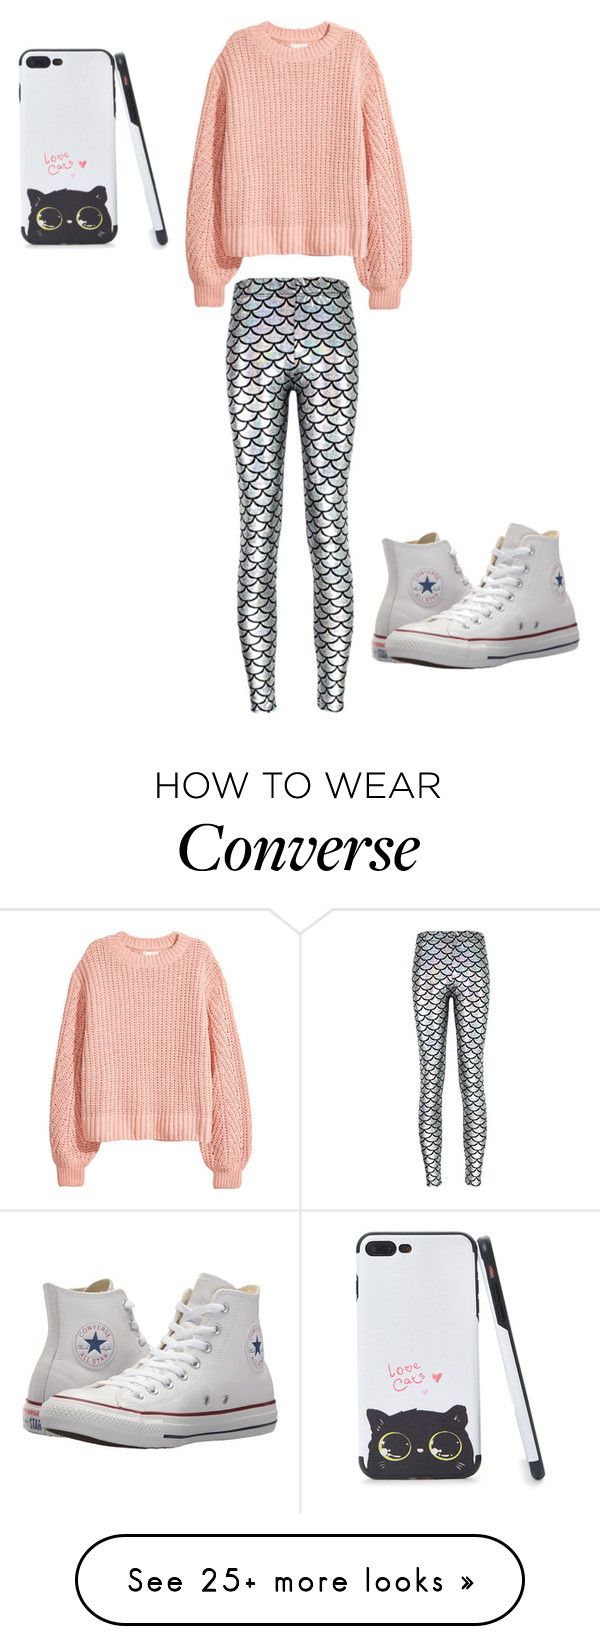 """""""Sweaters!"""" by whitefrost2016 on Polyvore featuring H&M, Alaroo, Converse and pastelsweaters"""